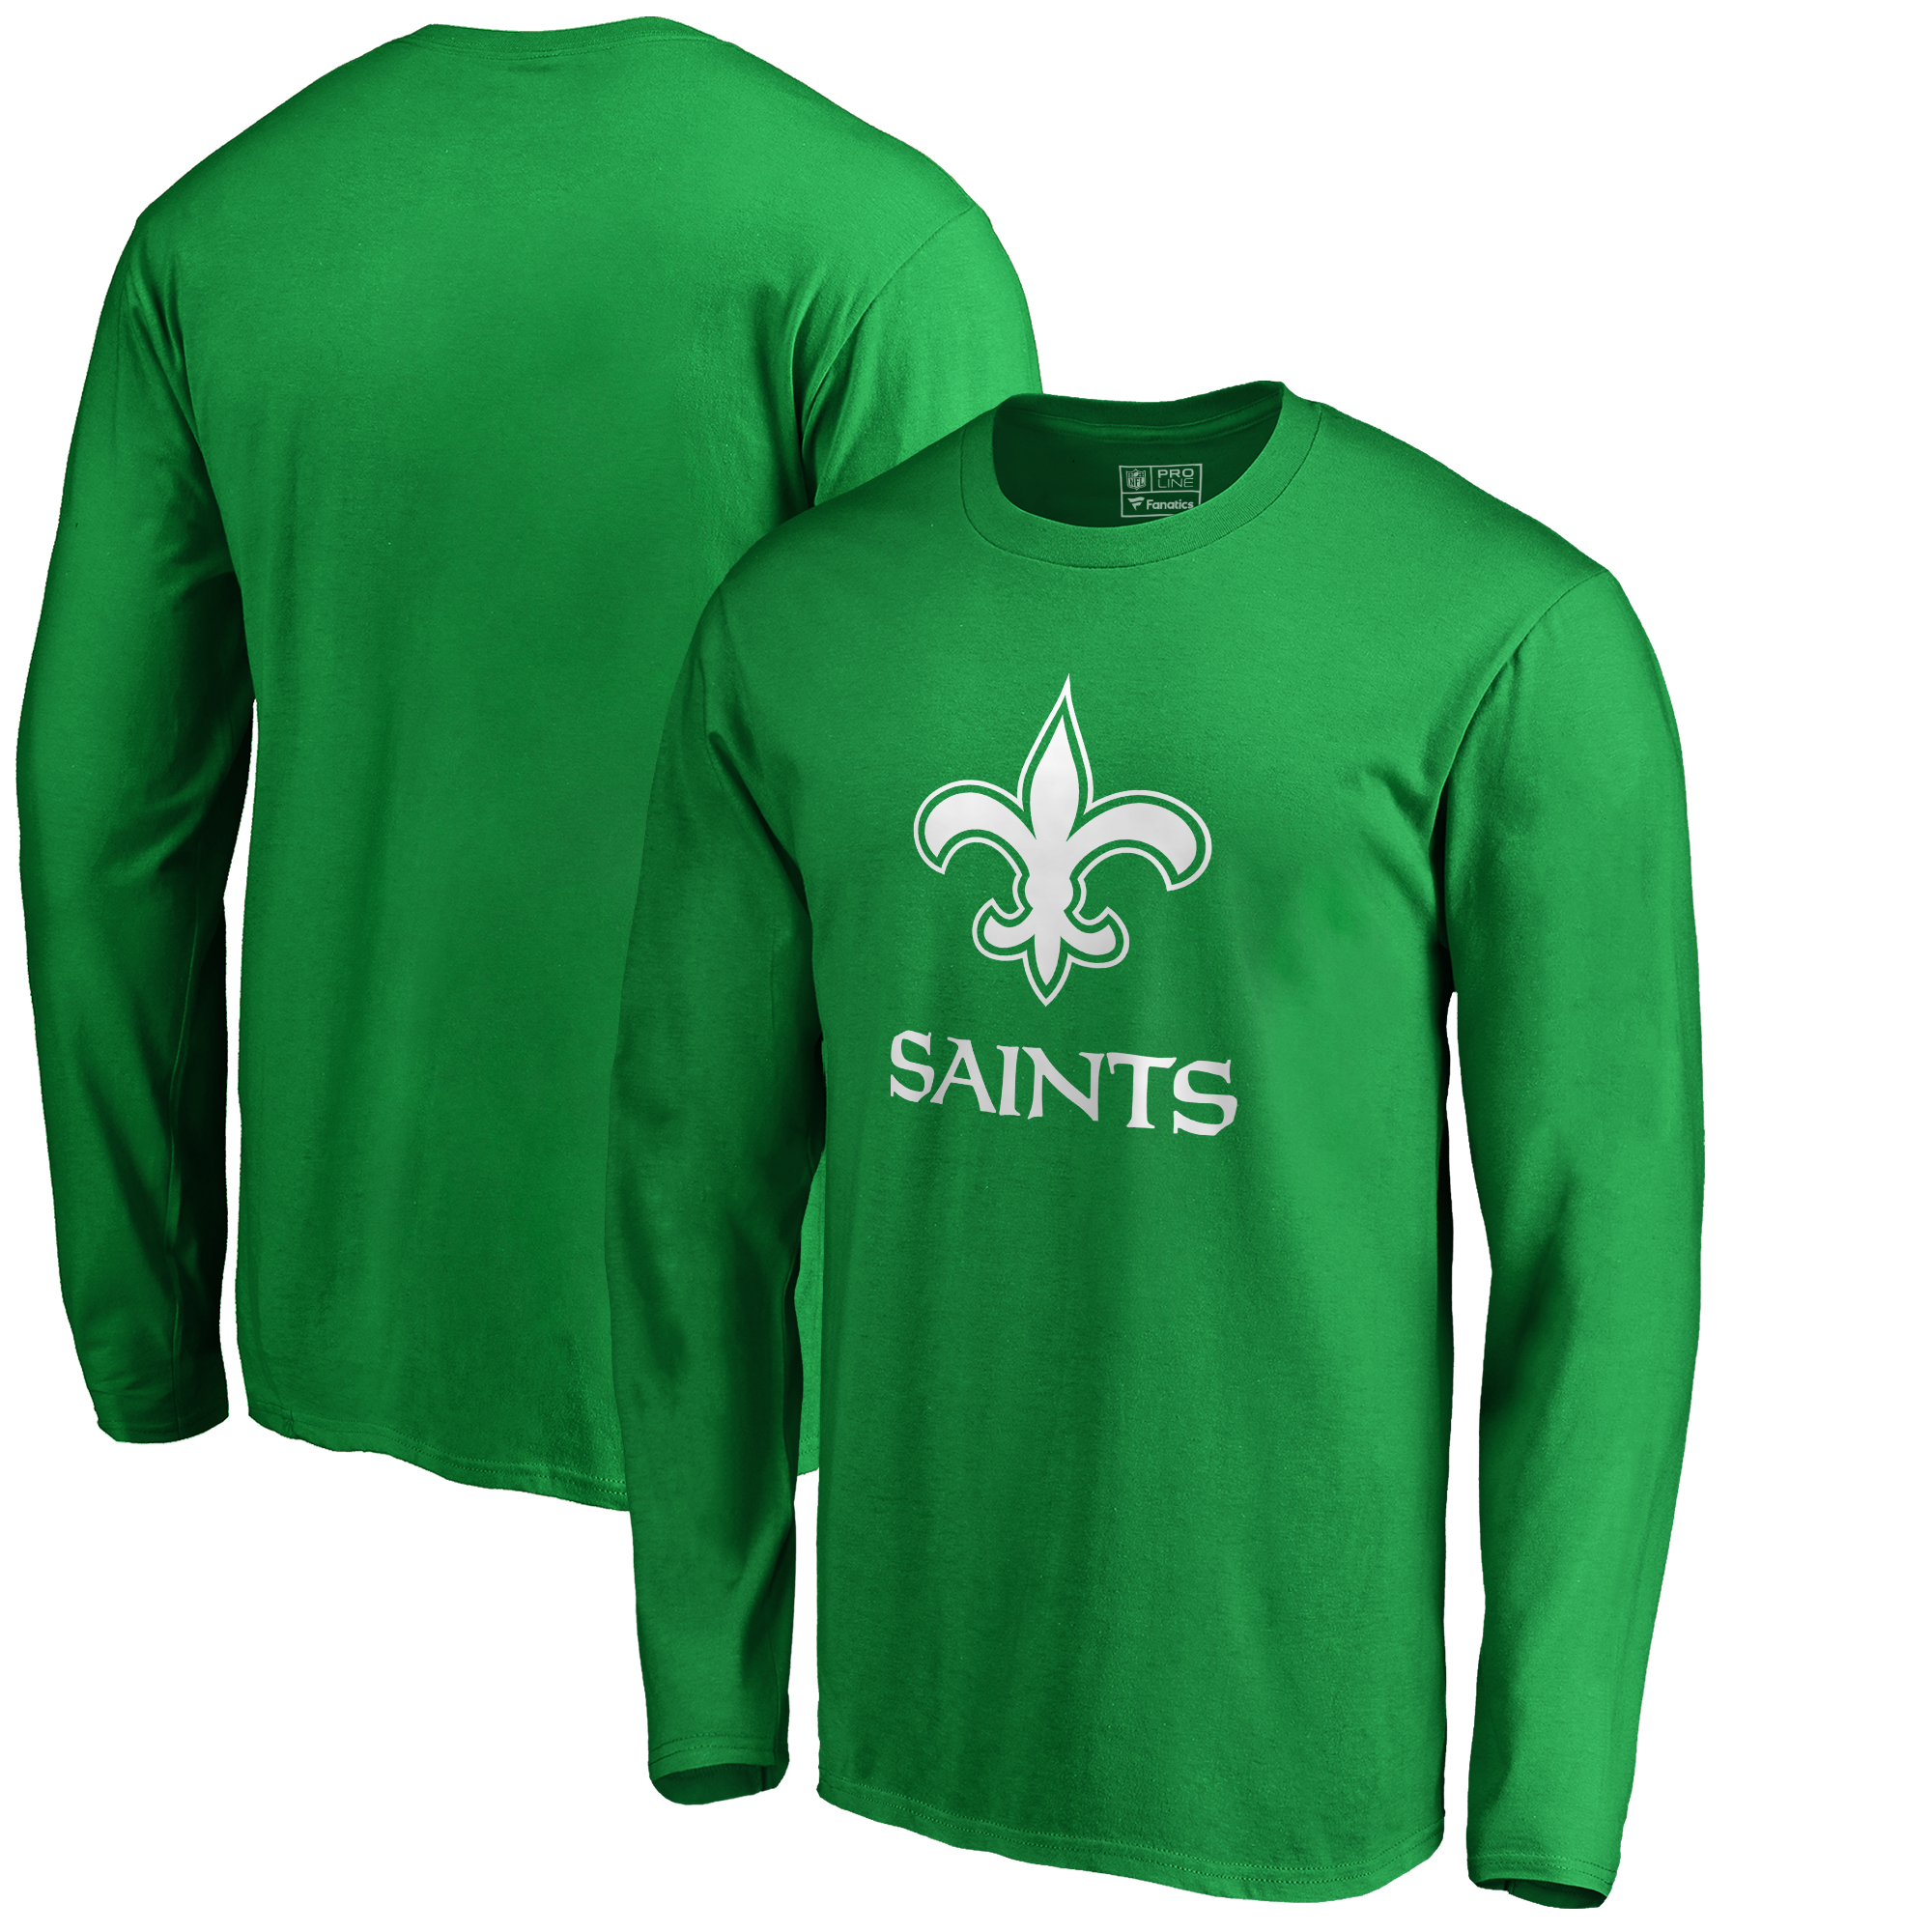 New Orleans Saints NFL Pro Line by Fanatics Branded St. Patrick's Day White Logo Long Sleeve T-Shirt - Kelly Green